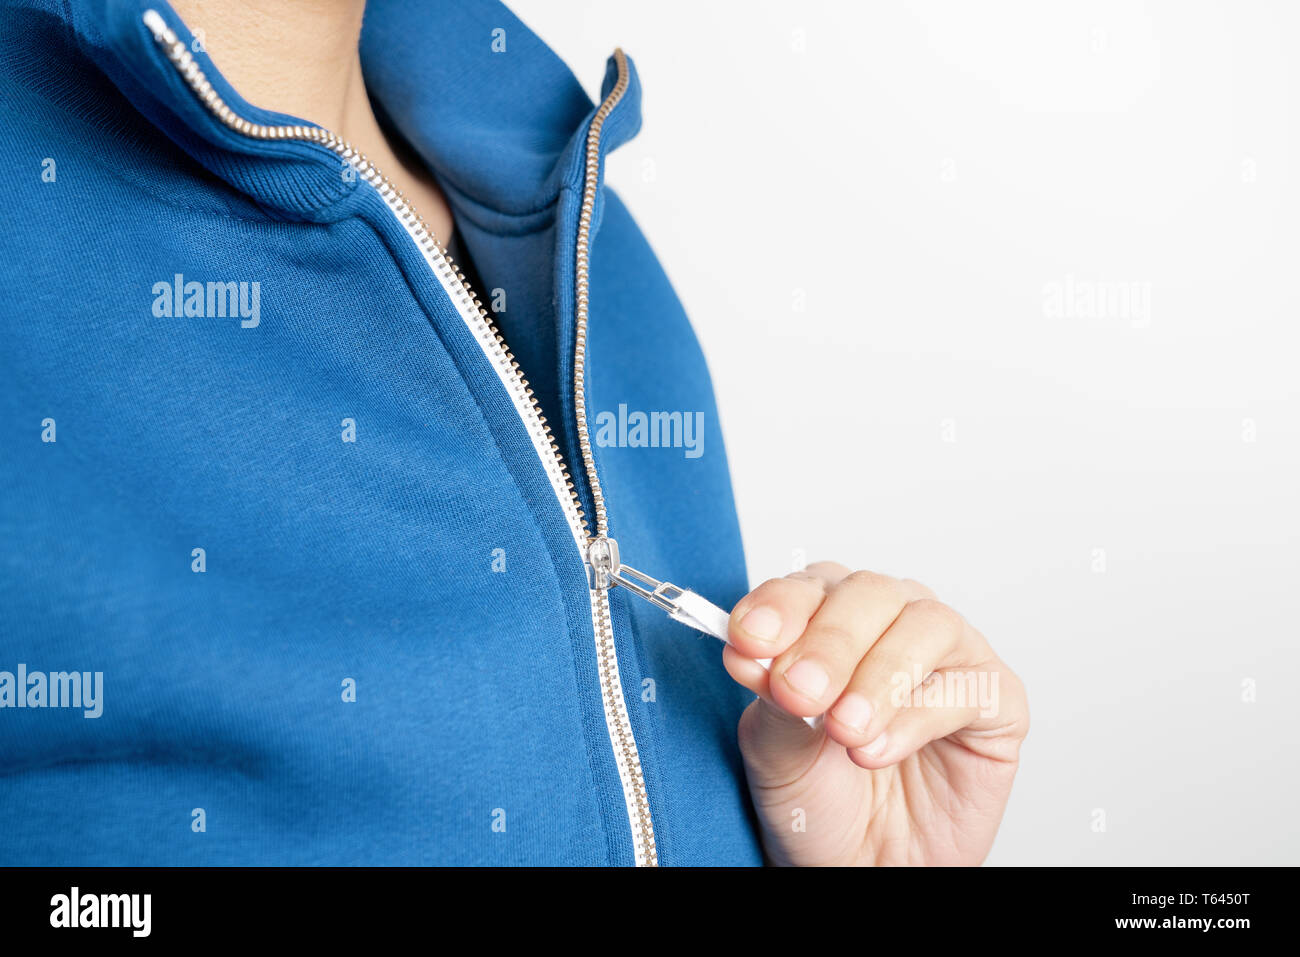 Sweatshirt design and fashion concept - young woman in blue sweatshirt with zipper Stock Photo